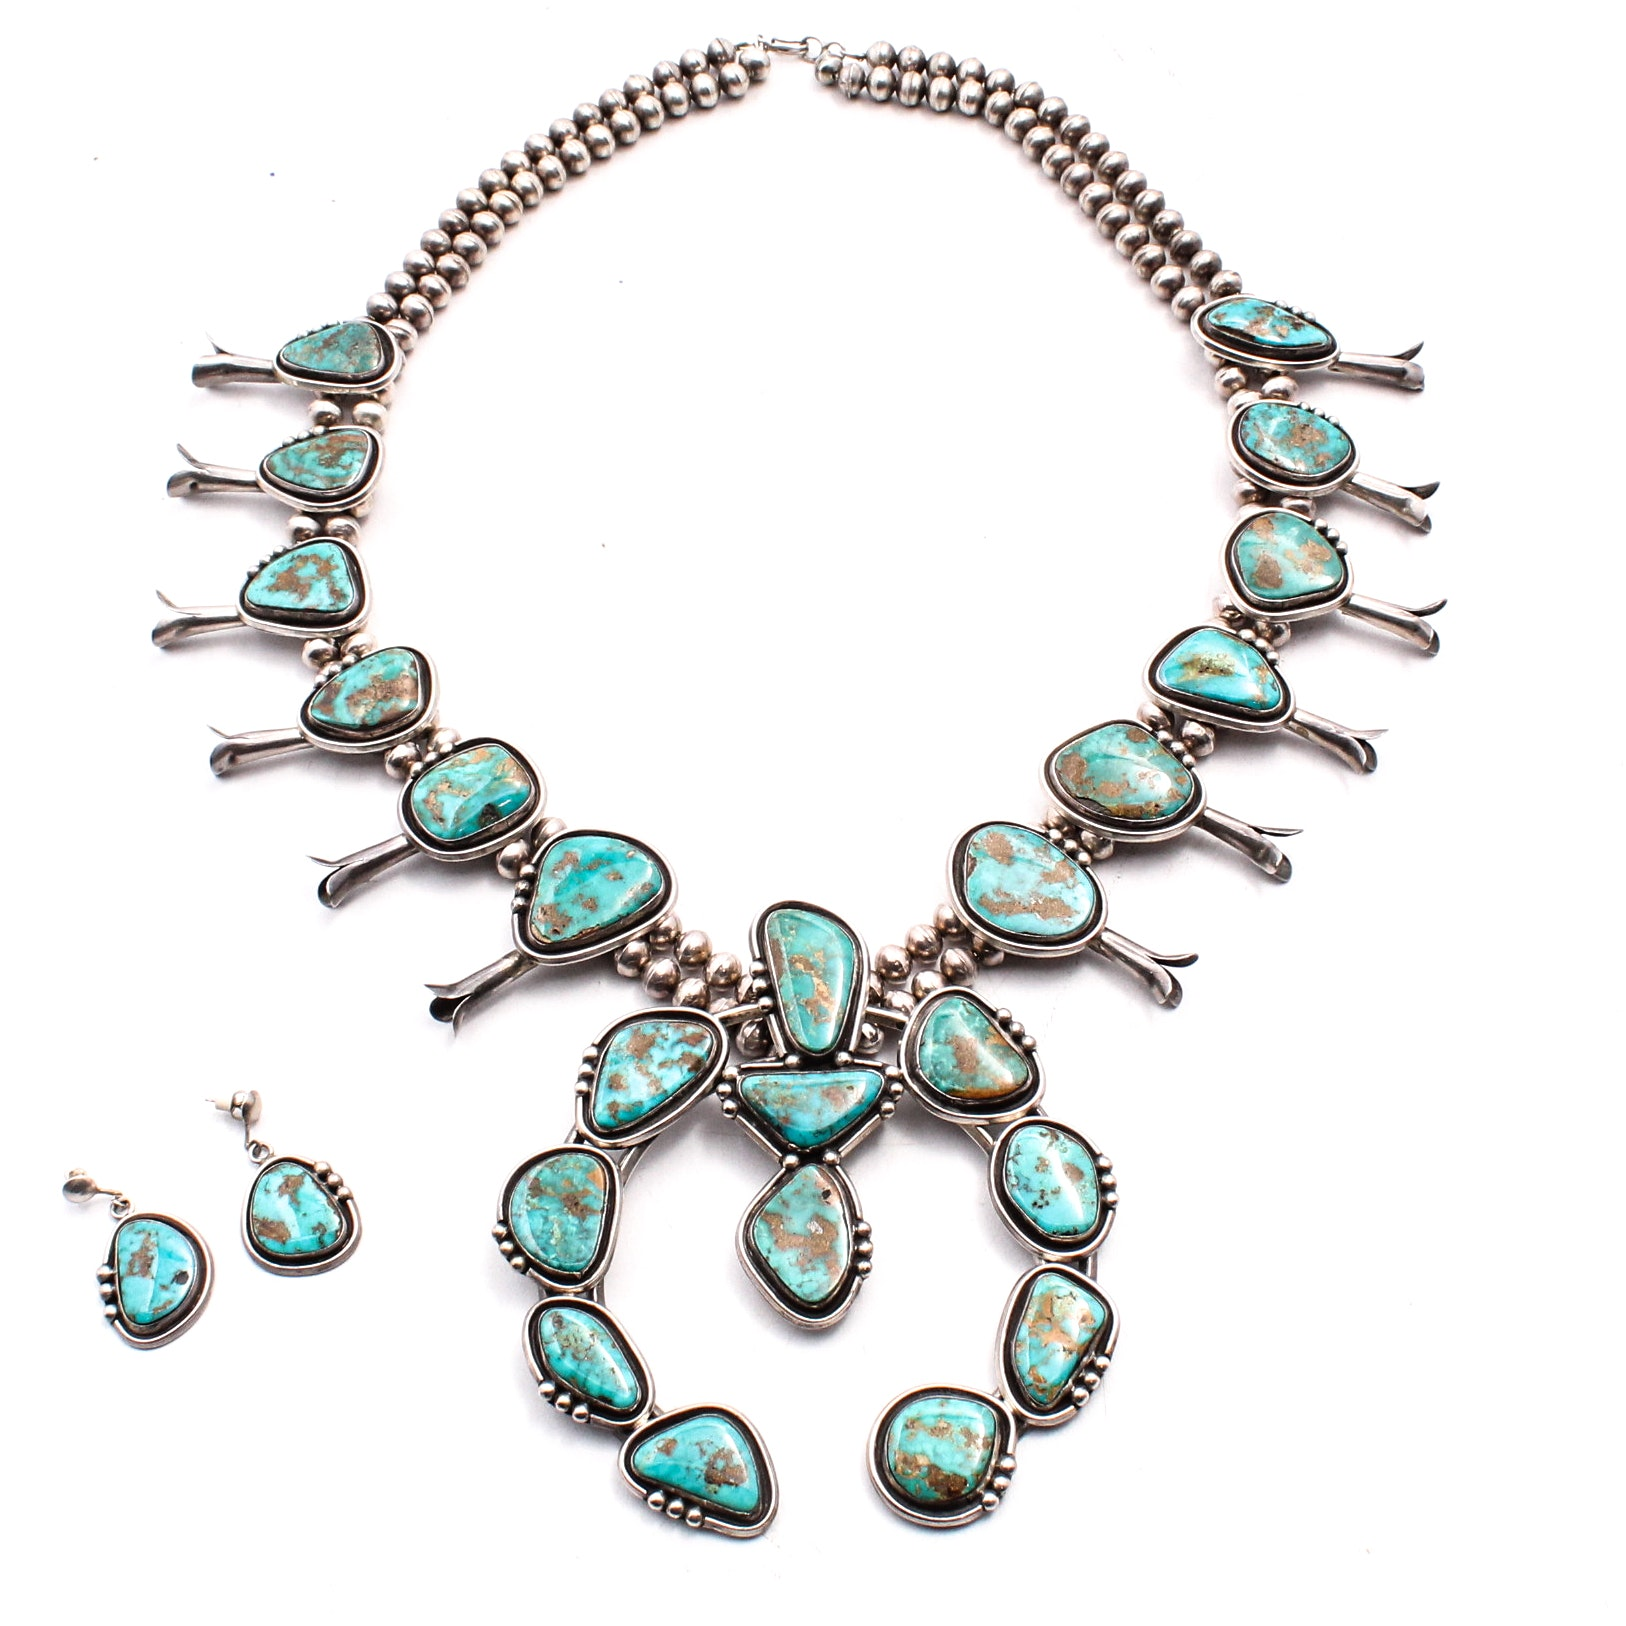 Southwestern Sterling Silver and Turquoise Squash Blossom Necklace and Earrings